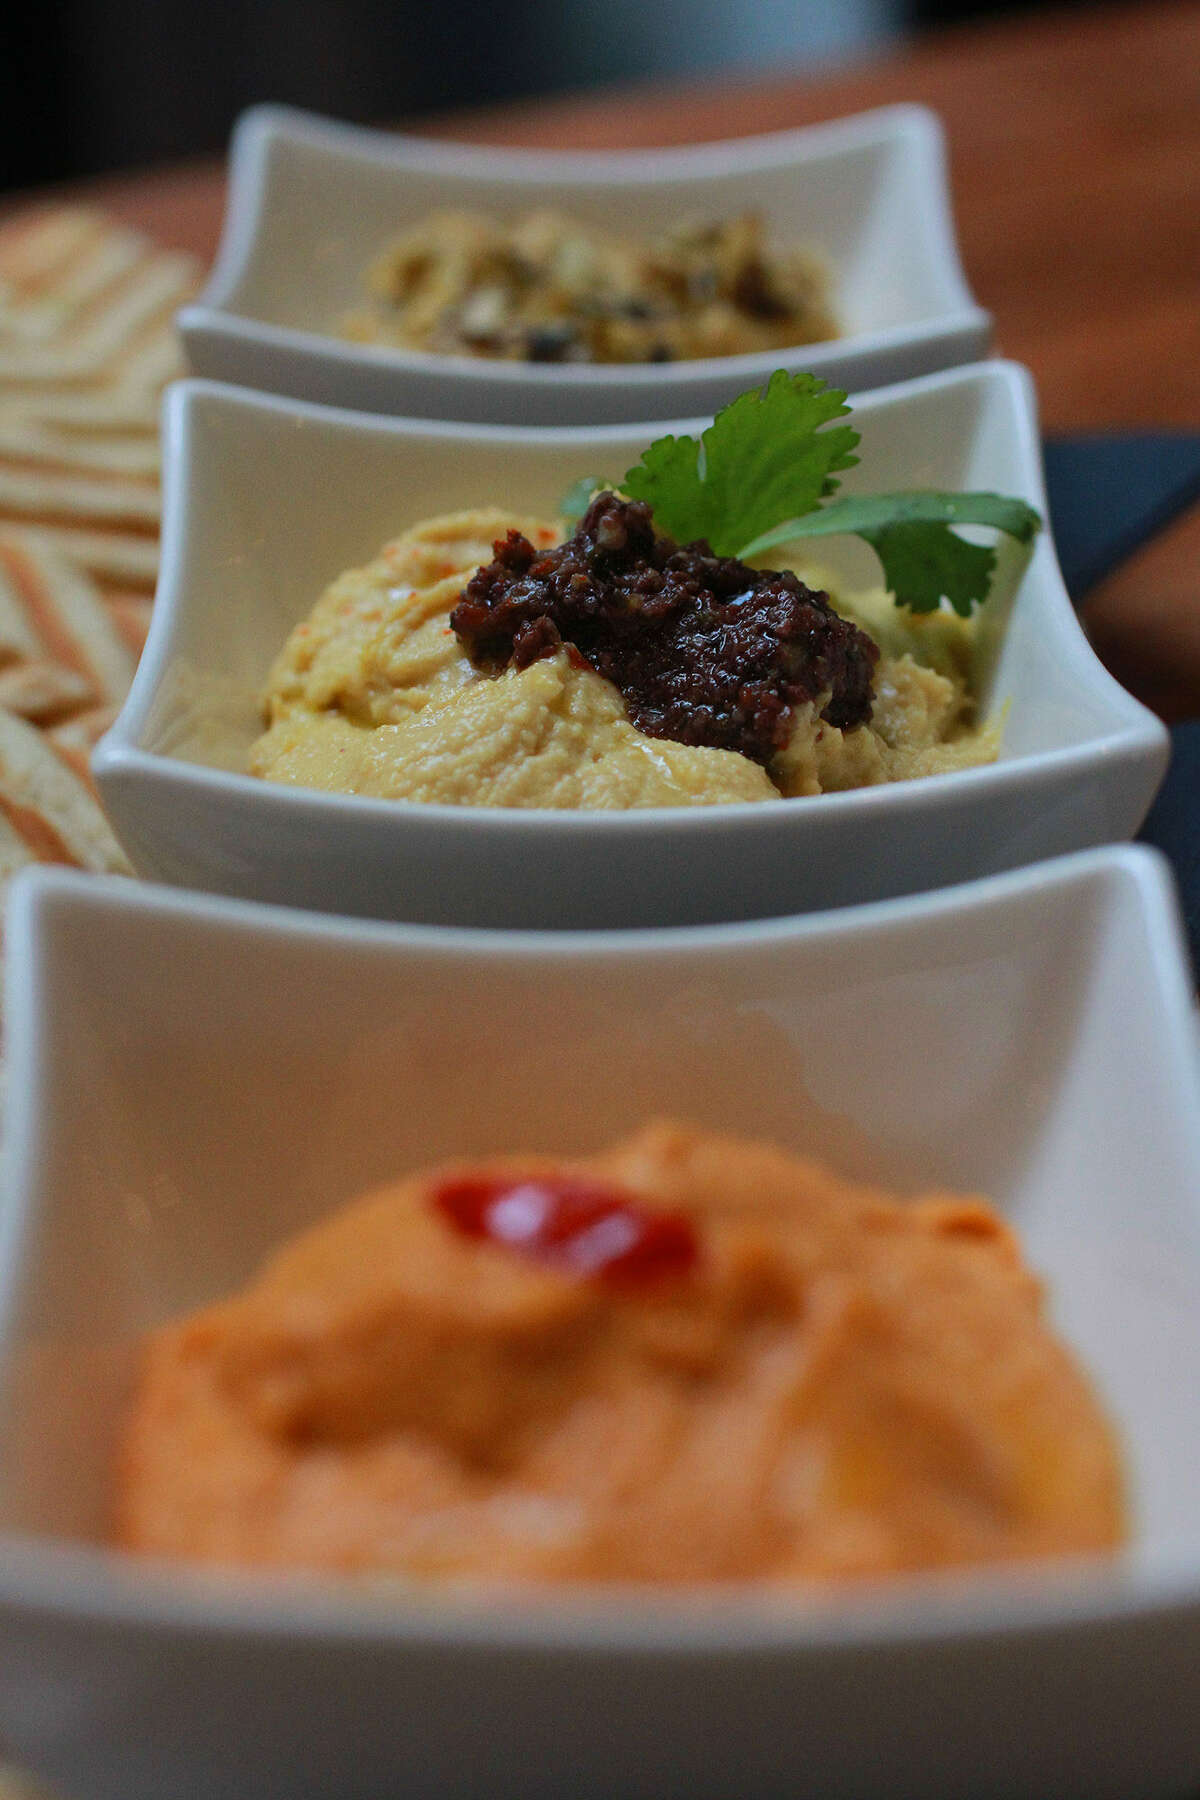 The Hummus Trio appetizer includes classic, roasted red pepper and artichoke varieties.